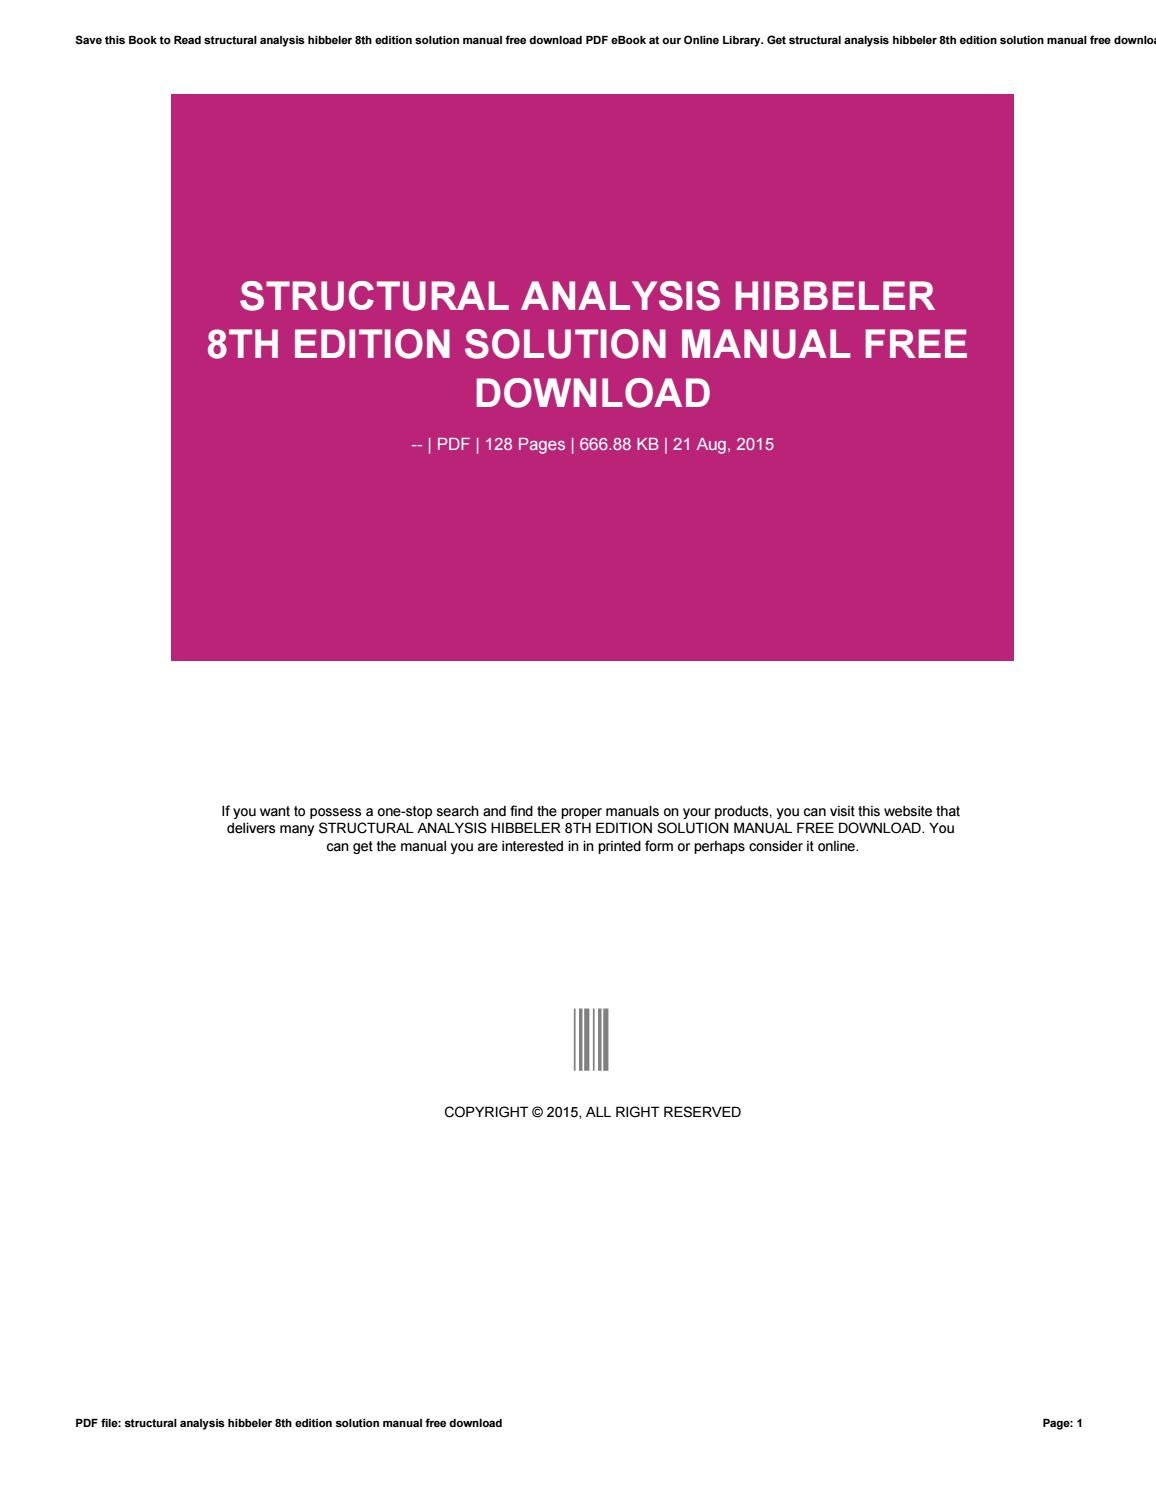 Structural analysis hibbeler 8th edition solution manual free download by  andreas7yuana - issuu